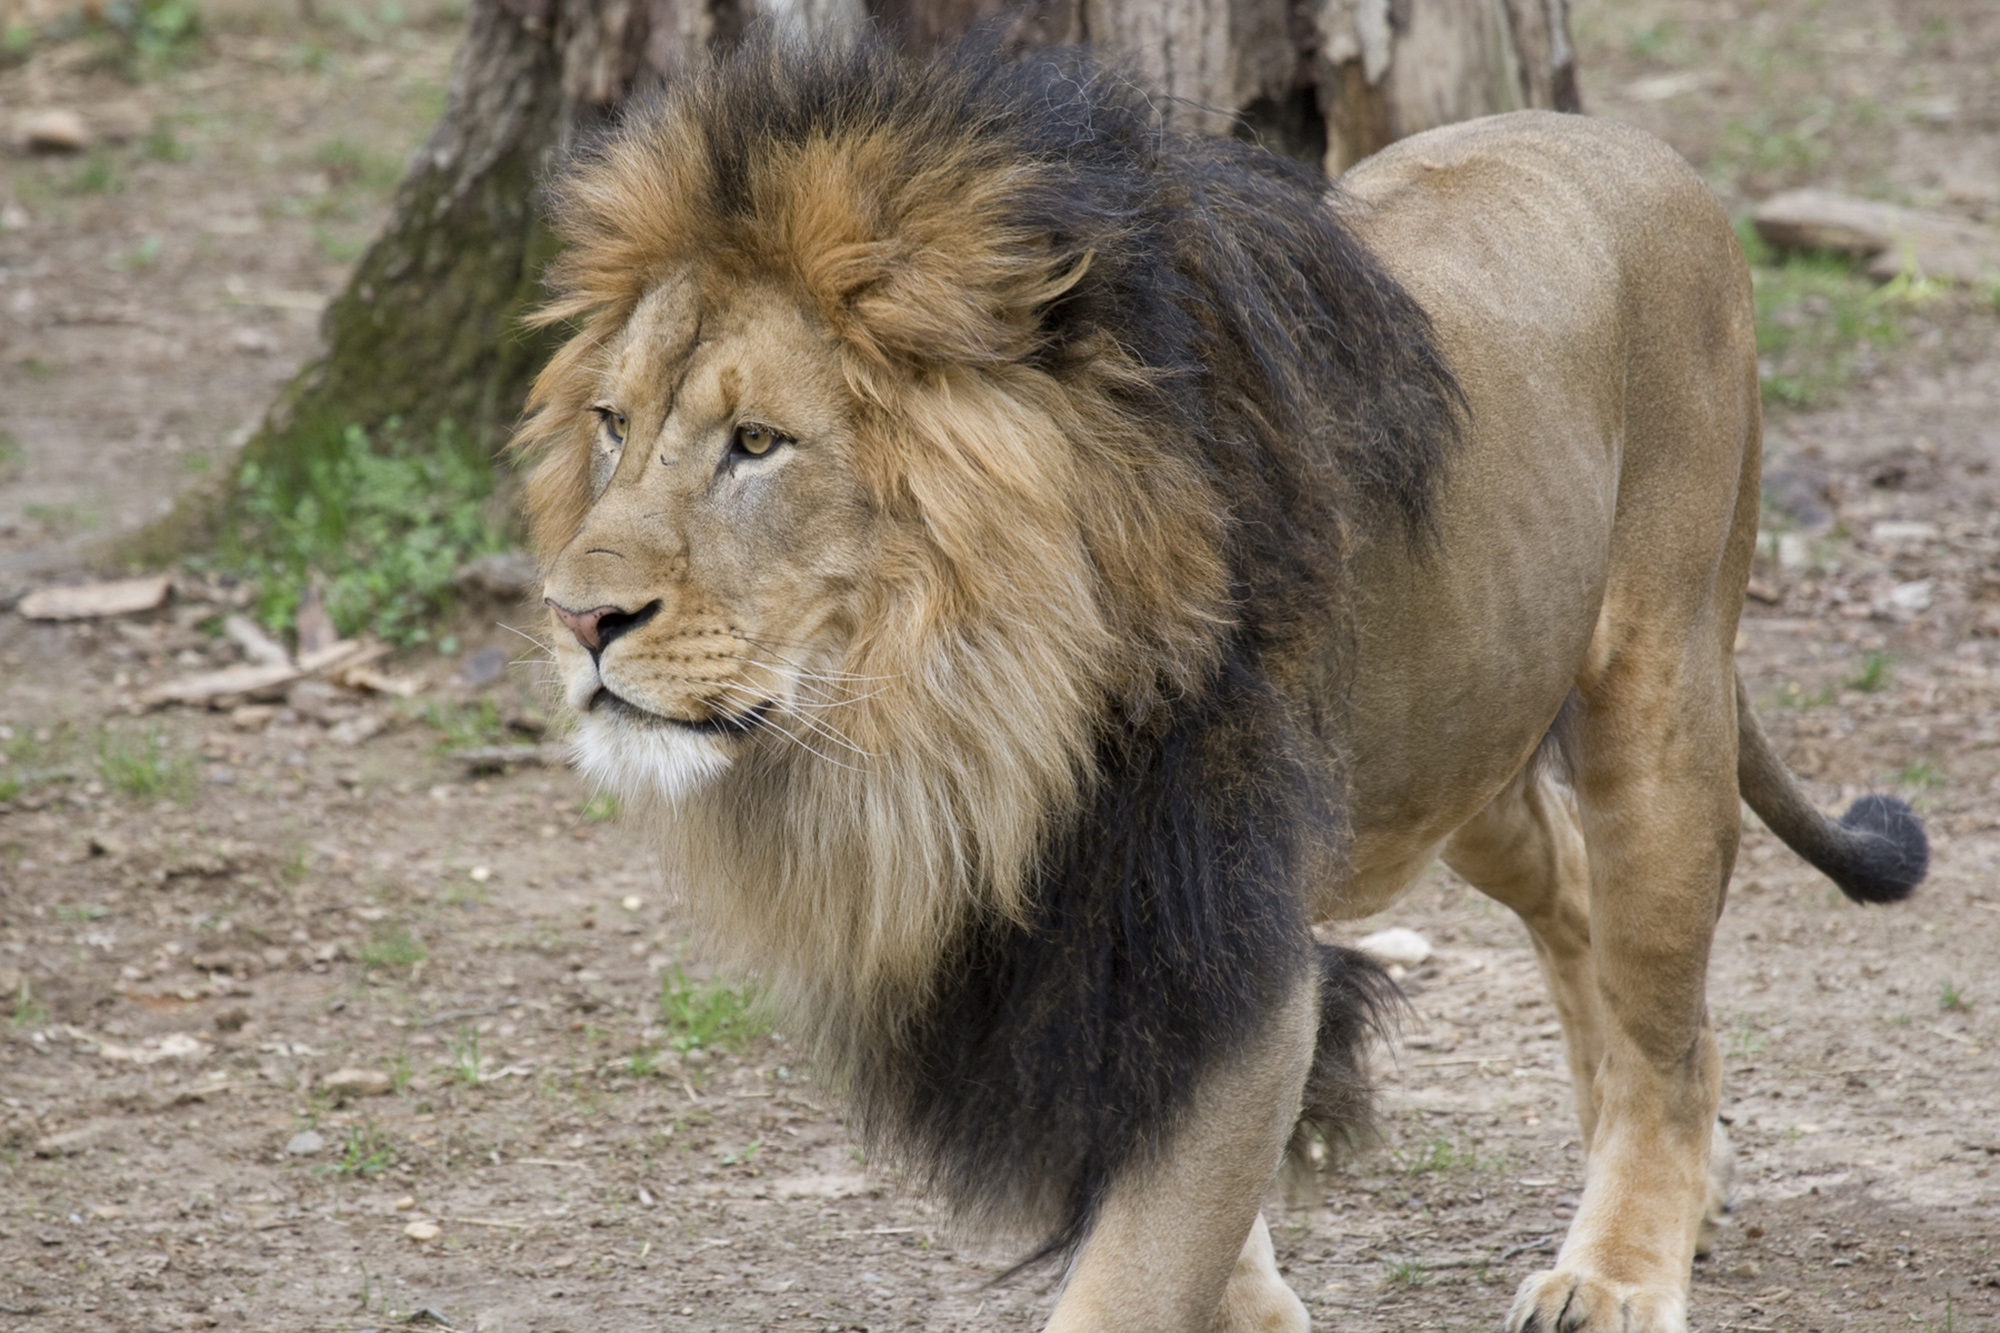 Adult male African lion Luke at Smithsonian's National Zoo. Six African lions, a Sumatran tiger and two Amur tigers are being treated for COVID-19 at the Smithsonian National Zoo. (Smithsonian's National Zoo & Conservation Biology Institute/Zenger News).